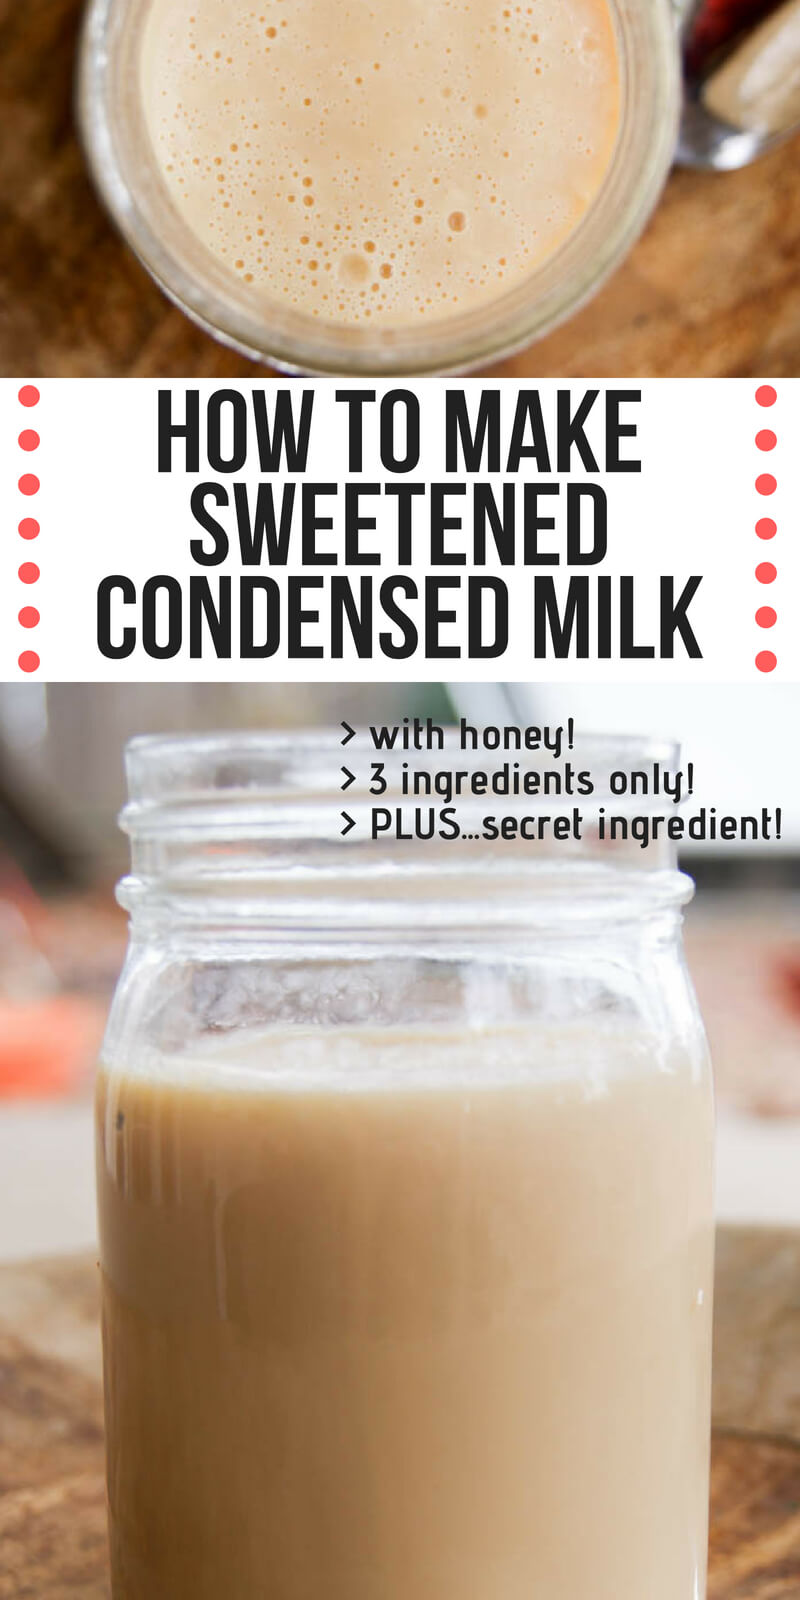 How to Make Sweetened Condensed Milk -Making your own sweetened condensed milk is as easy as blending three ingredients together in a saucepan. Read how you can swap to use natural sweeteners such as honey and coconut sugar and find out what the secret ingredient is that makes this so creamy and rich! Check out this easy 3-ingredient tutorial on how to make sweetened condensed milk! #condensedmilk #homemade